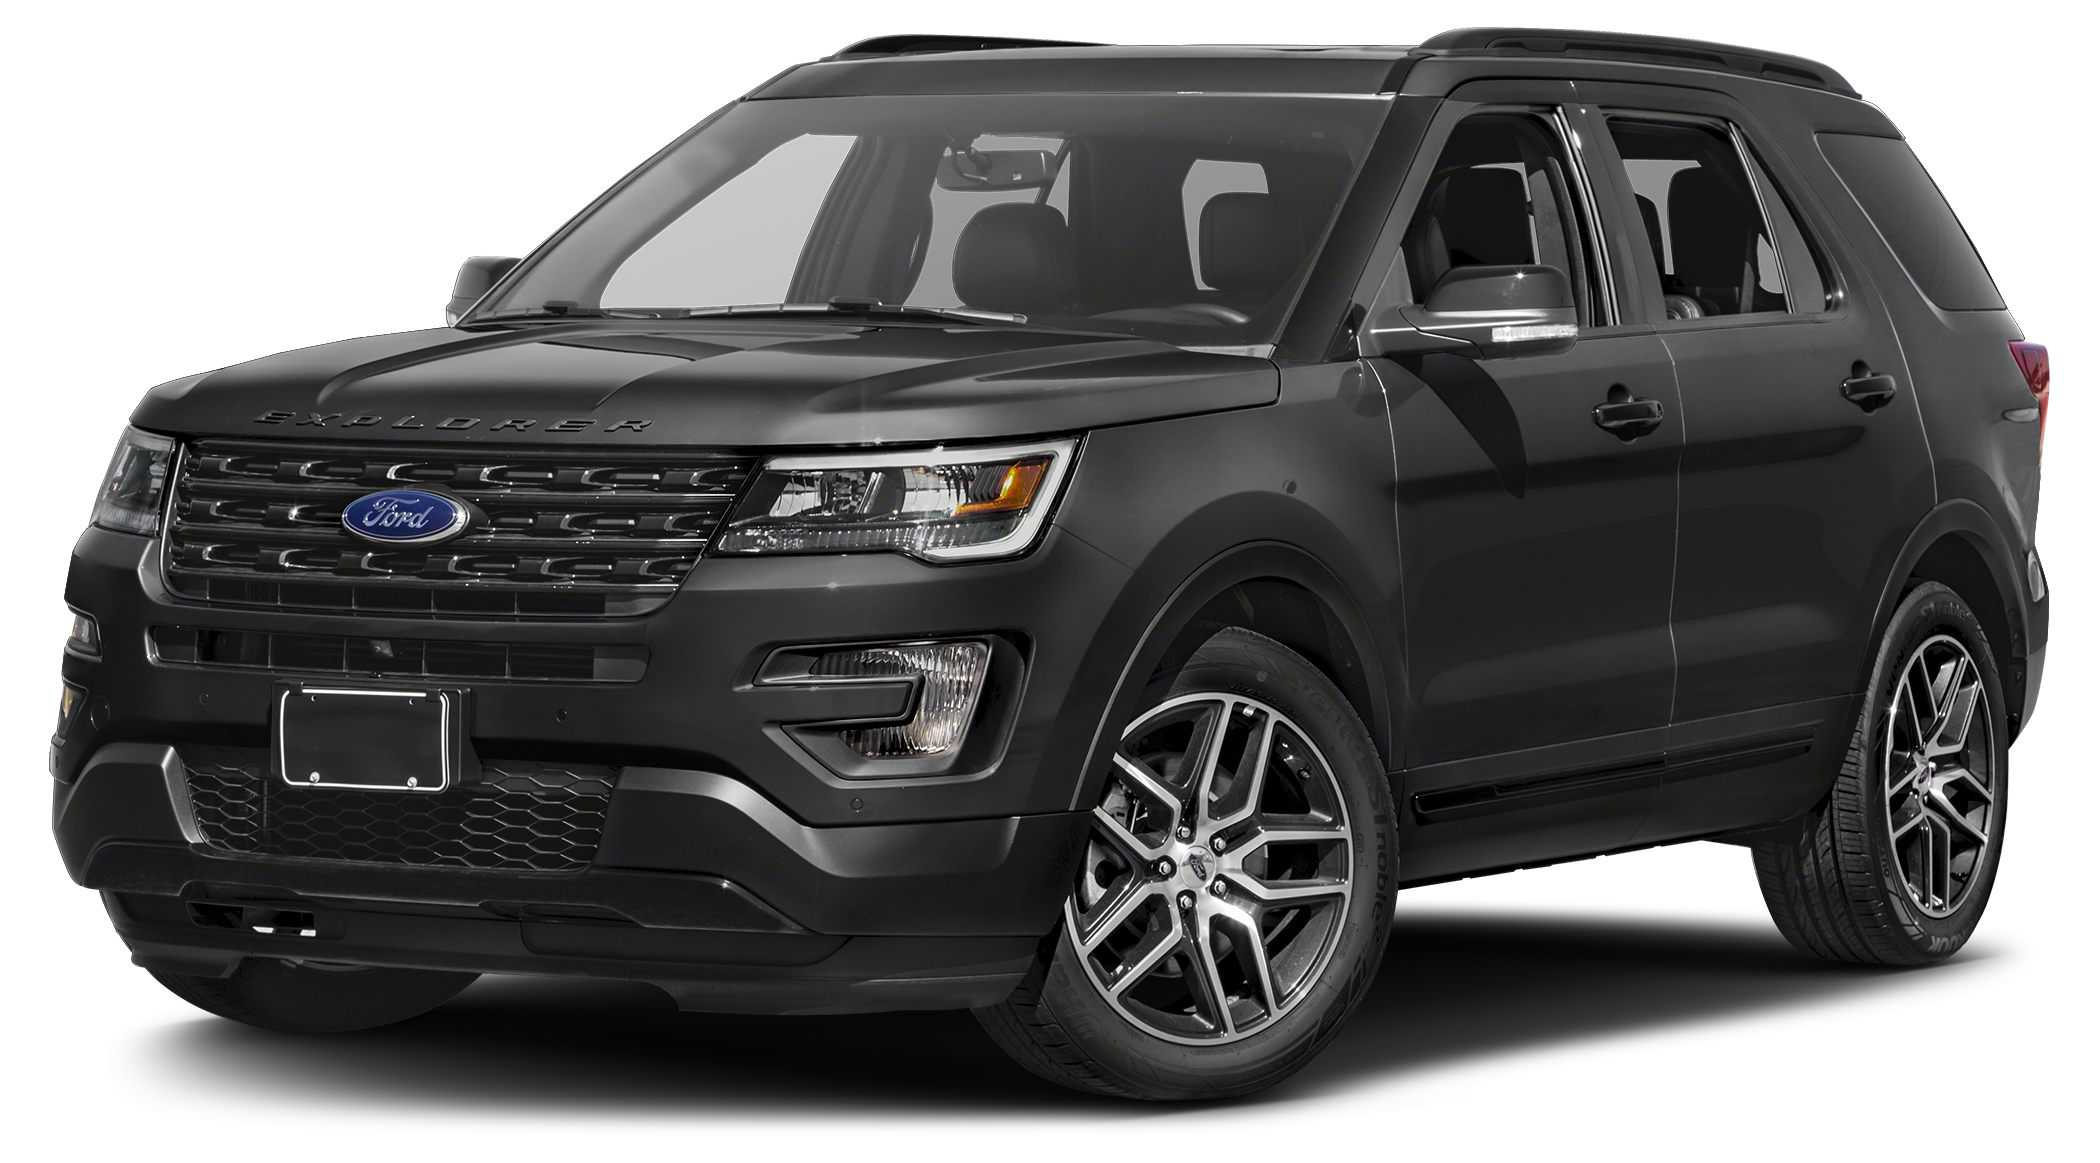 used ford explorer for sale in omaha ne with photos. Black Bedroom Furniture Sets. Home Design Ideas